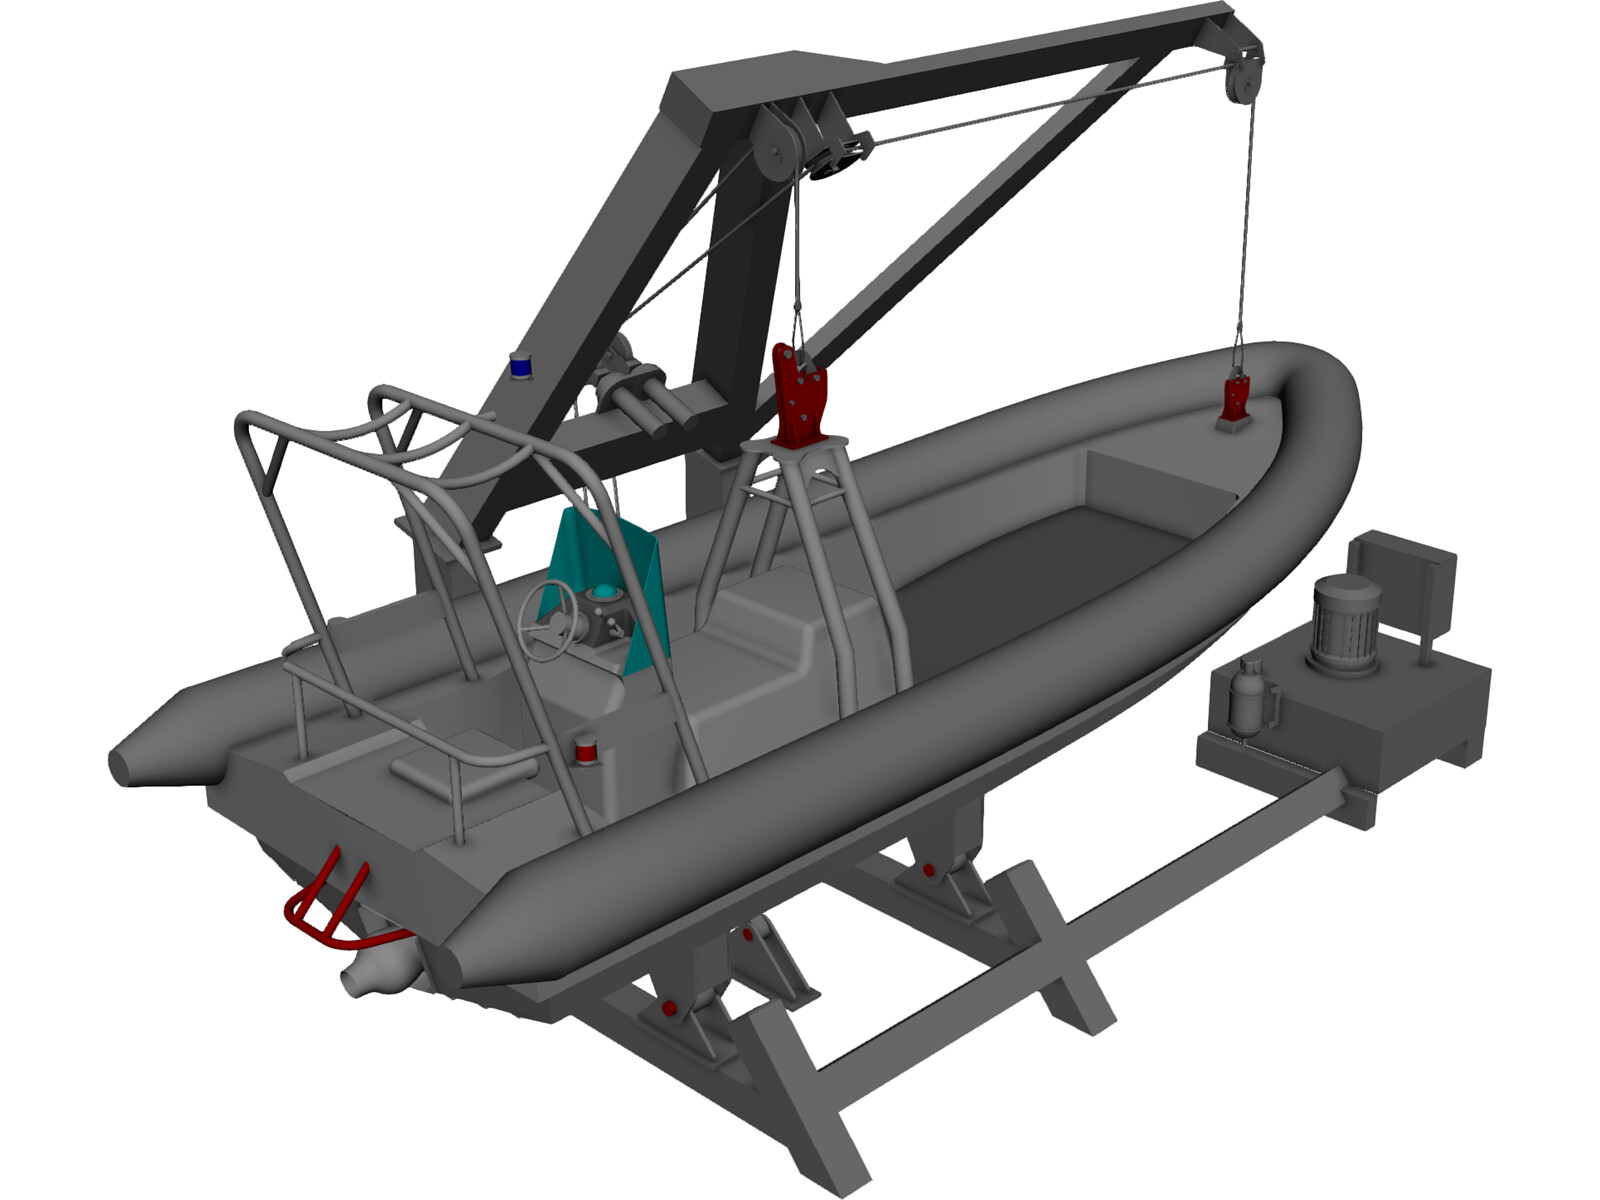 Davit and Inflatable Boat 3D CAD Model